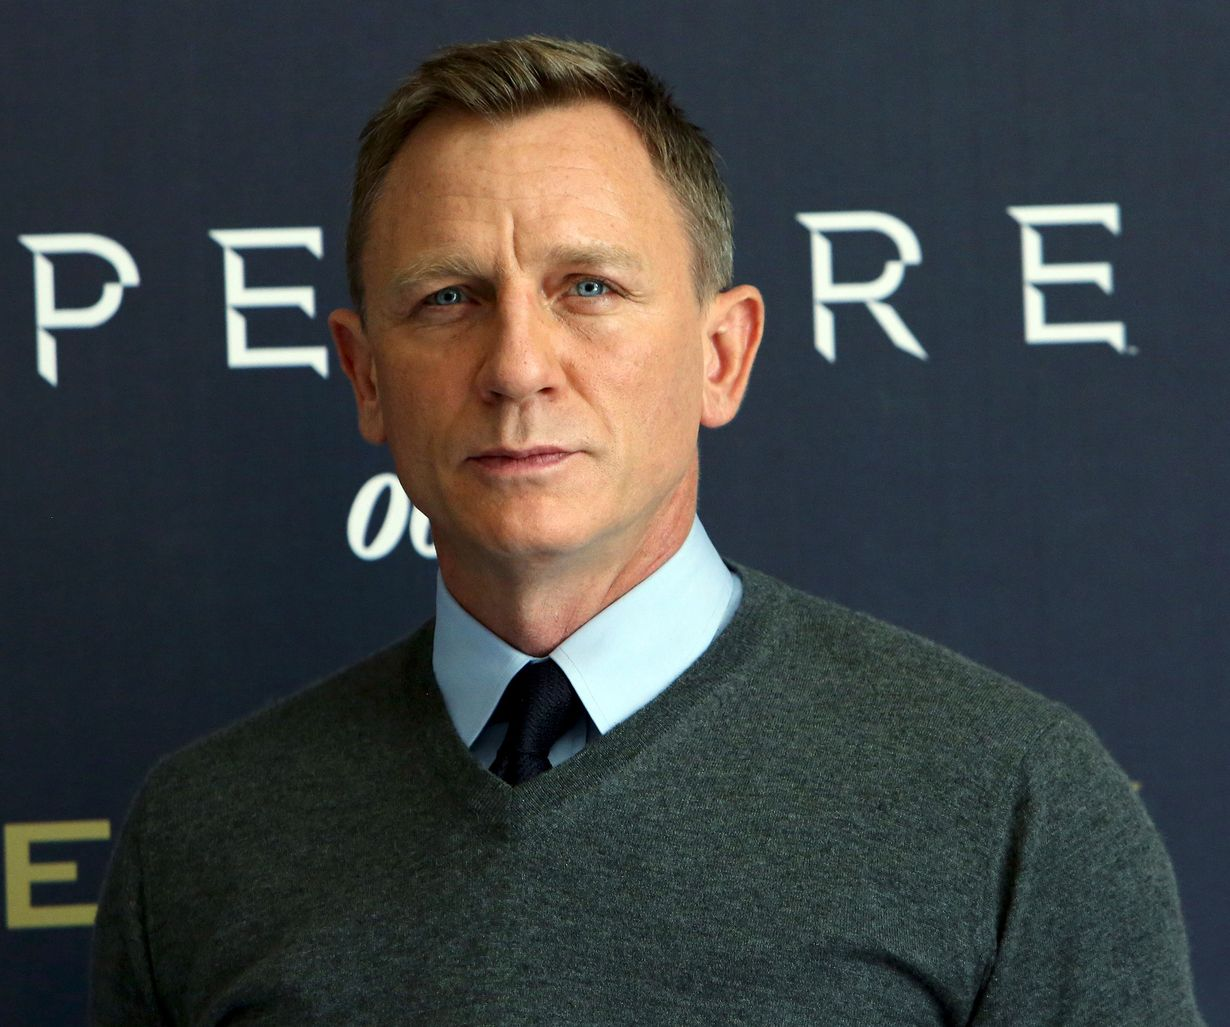 007 TRAVELERS: Happy Birthday Daniel Craig! 50 years on ...